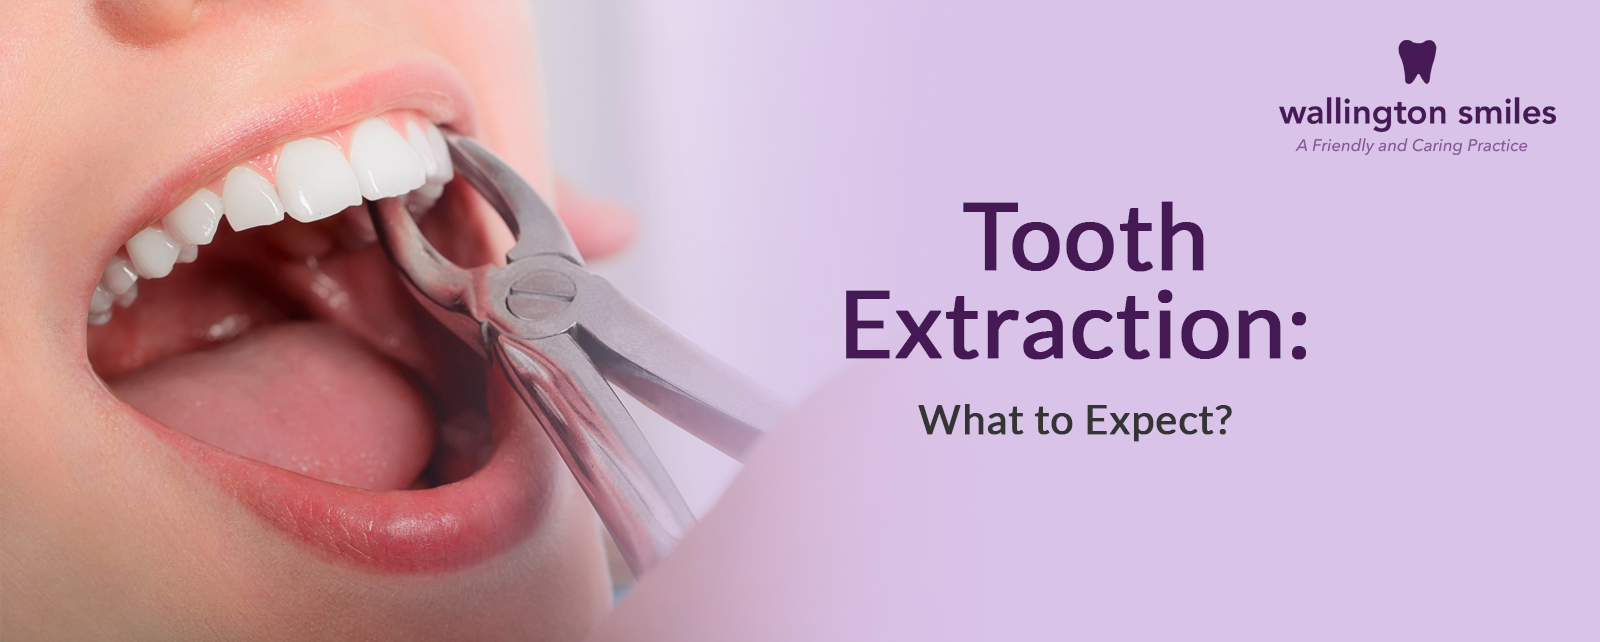 Tooth Extraction - dental surgery in Wallington